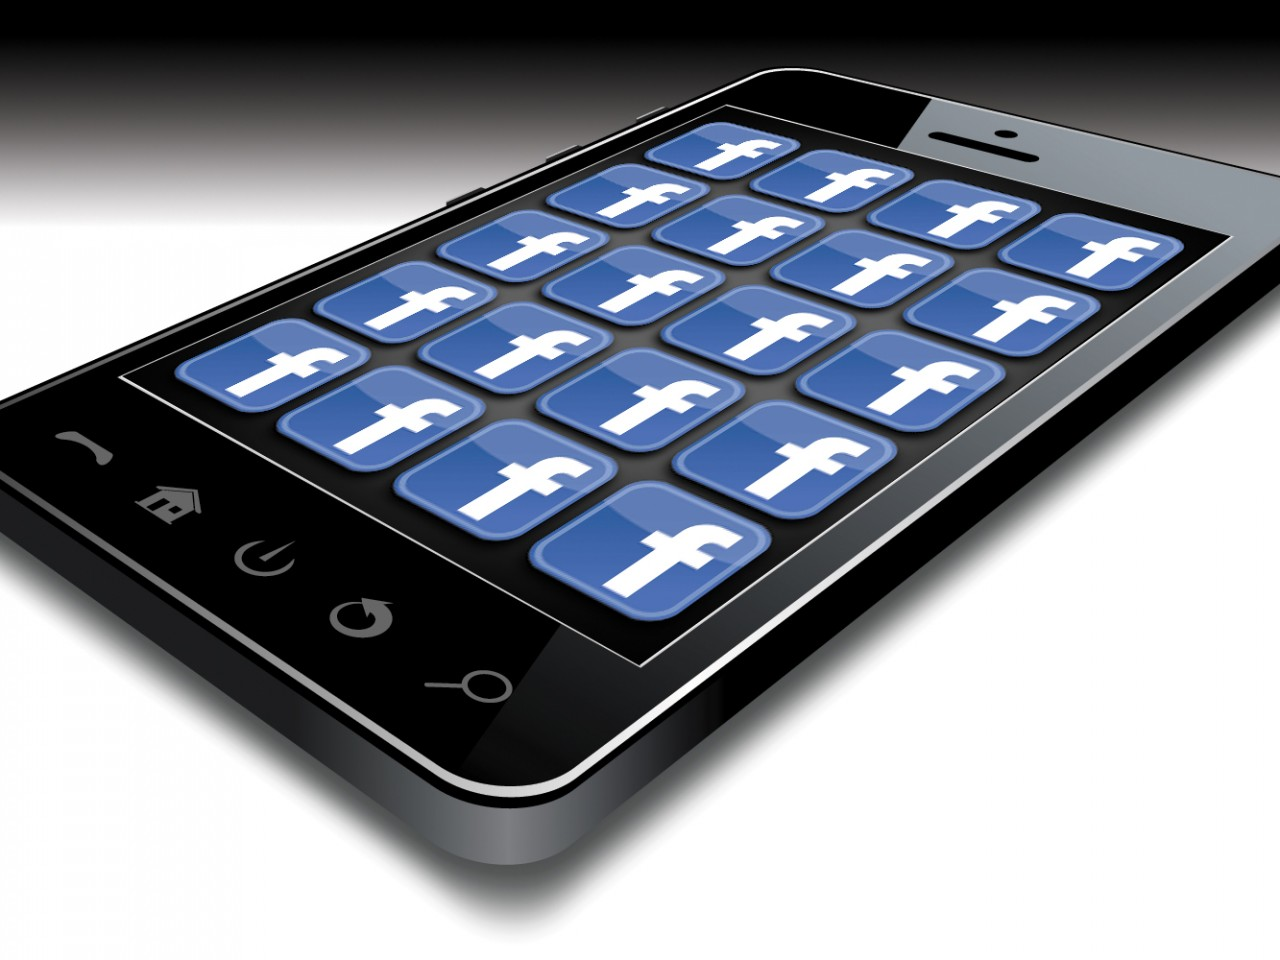 Why would anyone want a Facebook phone? - Salon.com